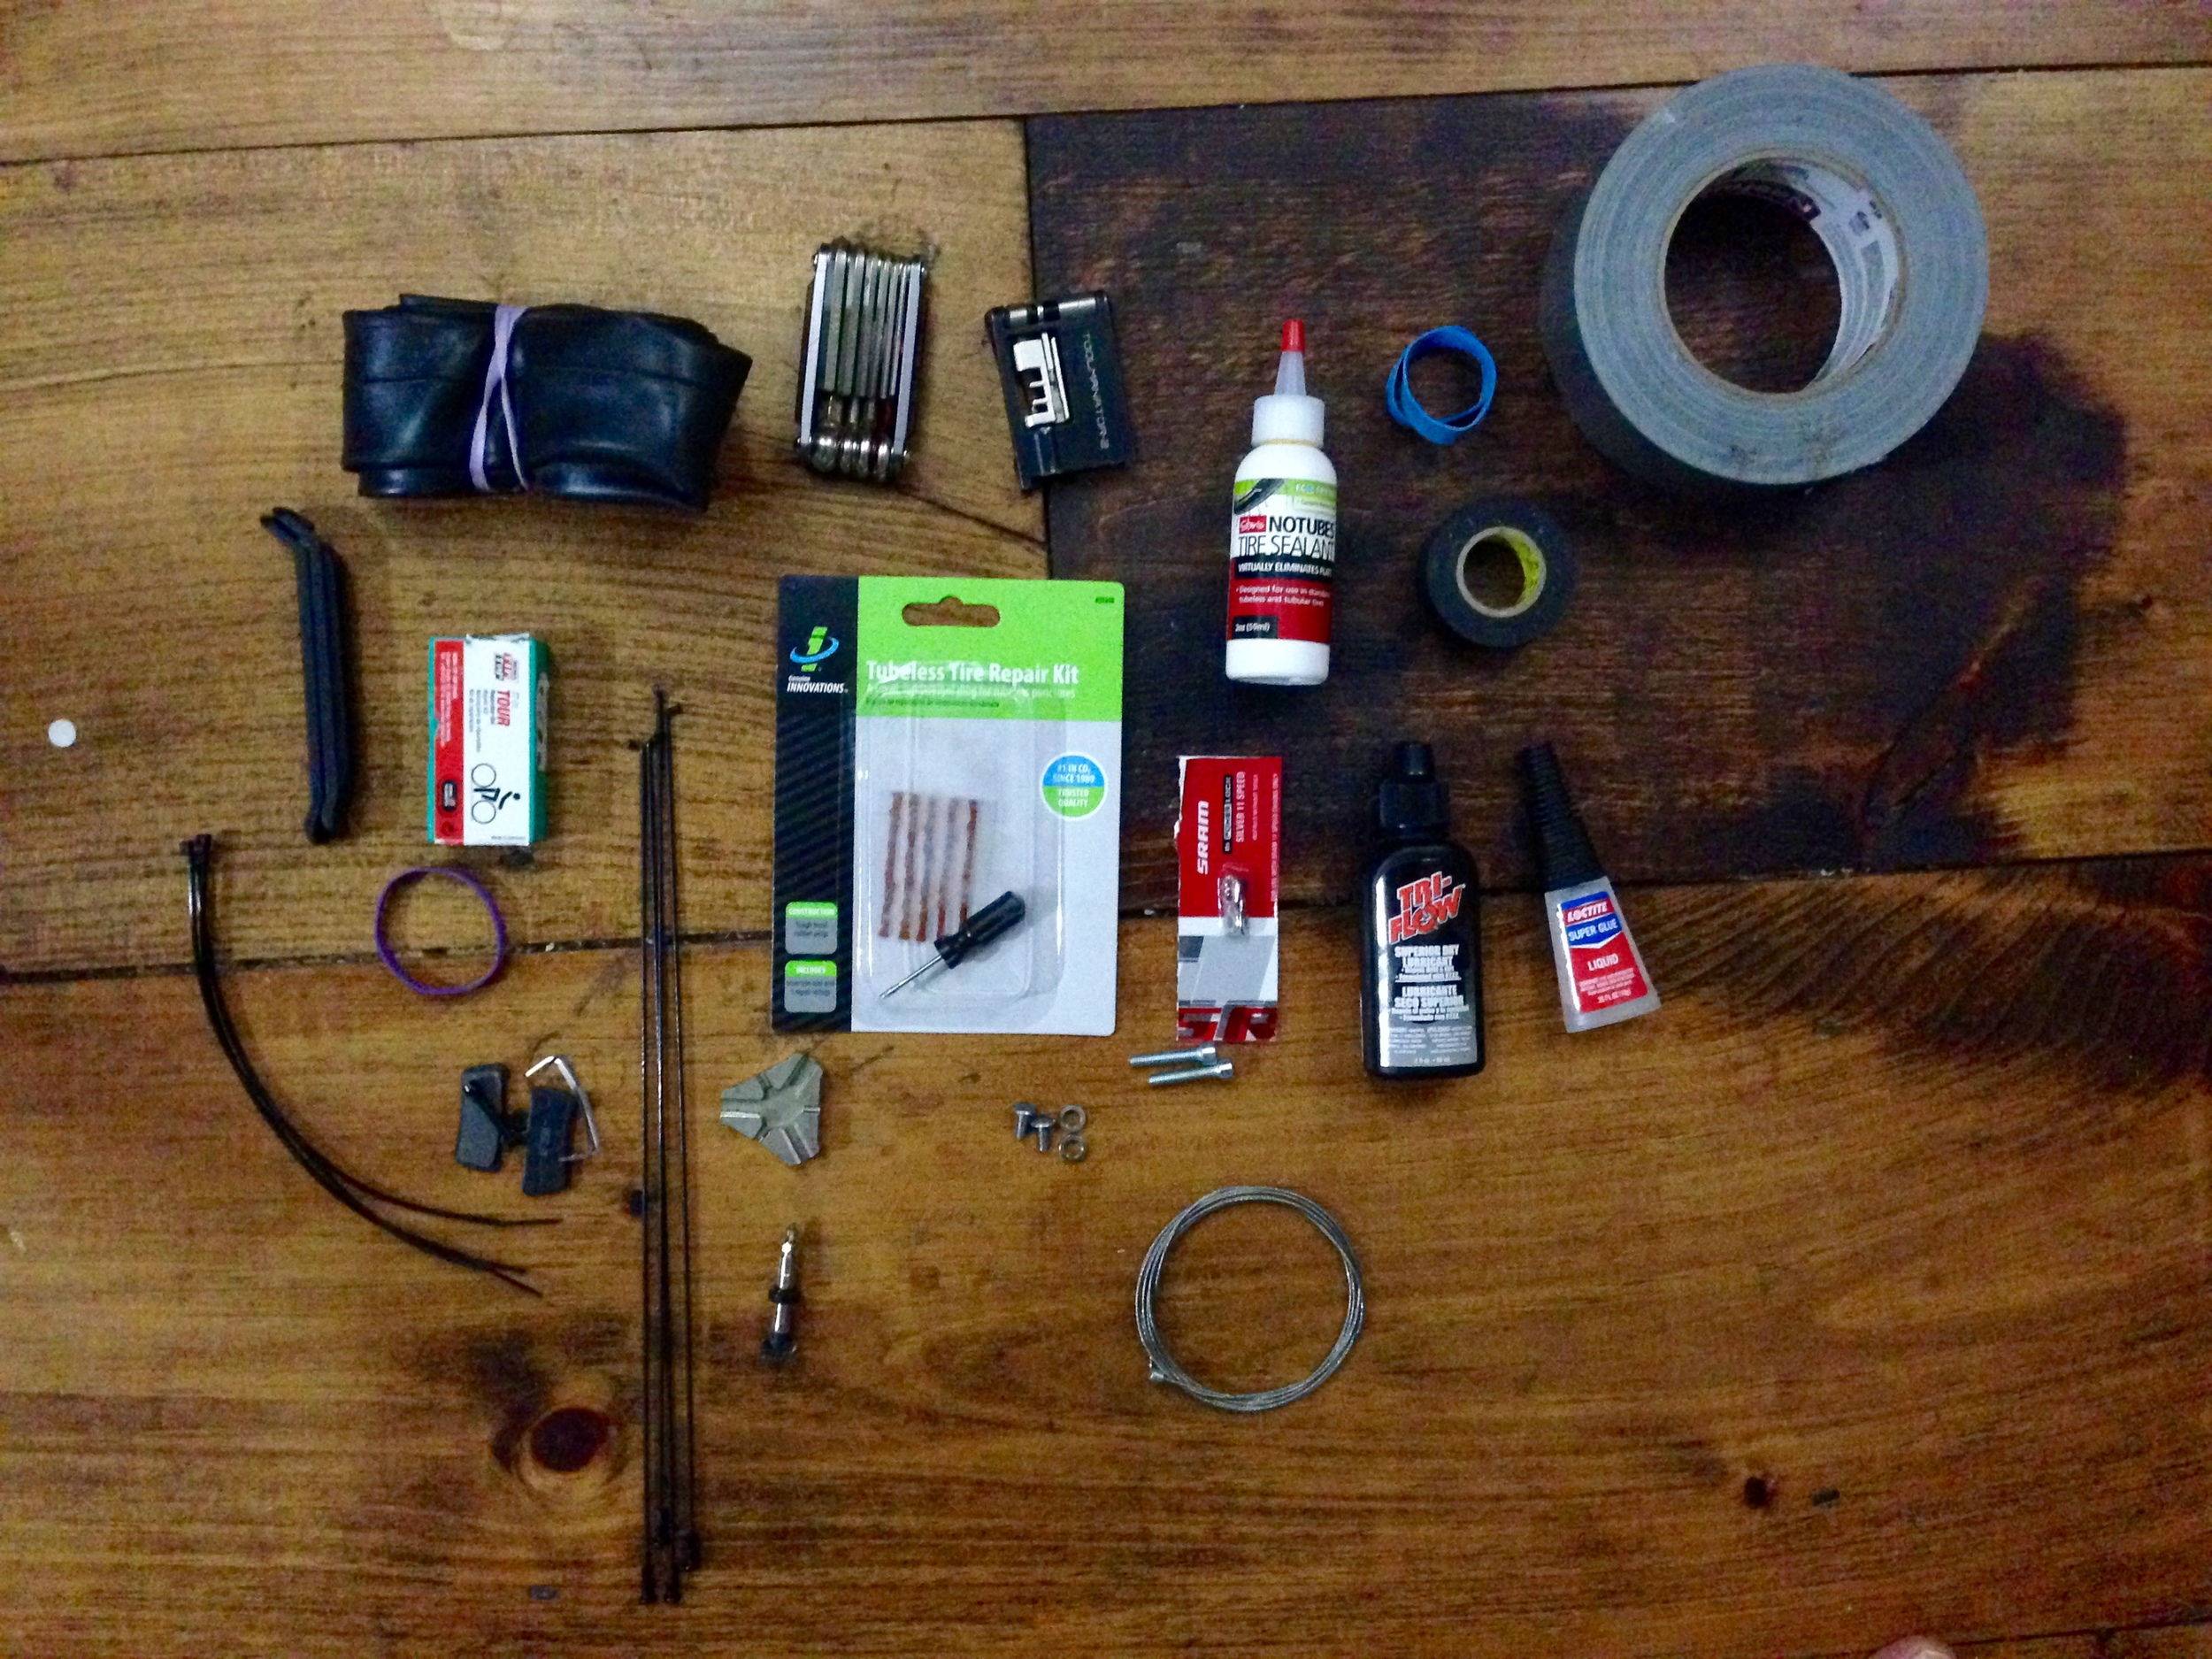 Bike repair knoll: bike tube, multi tool, chain break that someone almost broke, #stans, rubber bands, electrical and duct tape (yes I wrapped around my handlebars) tire lever (but I won't use them promise @tophervalenti ) patch kit, 3 x extra spokes, tubeless patch kit, master link for @srammtb 1 x 11 😍, chain lube, super glue, brake pads, zip ties, spoke wrench, extra valve/core, nuts, dérailleur cable.